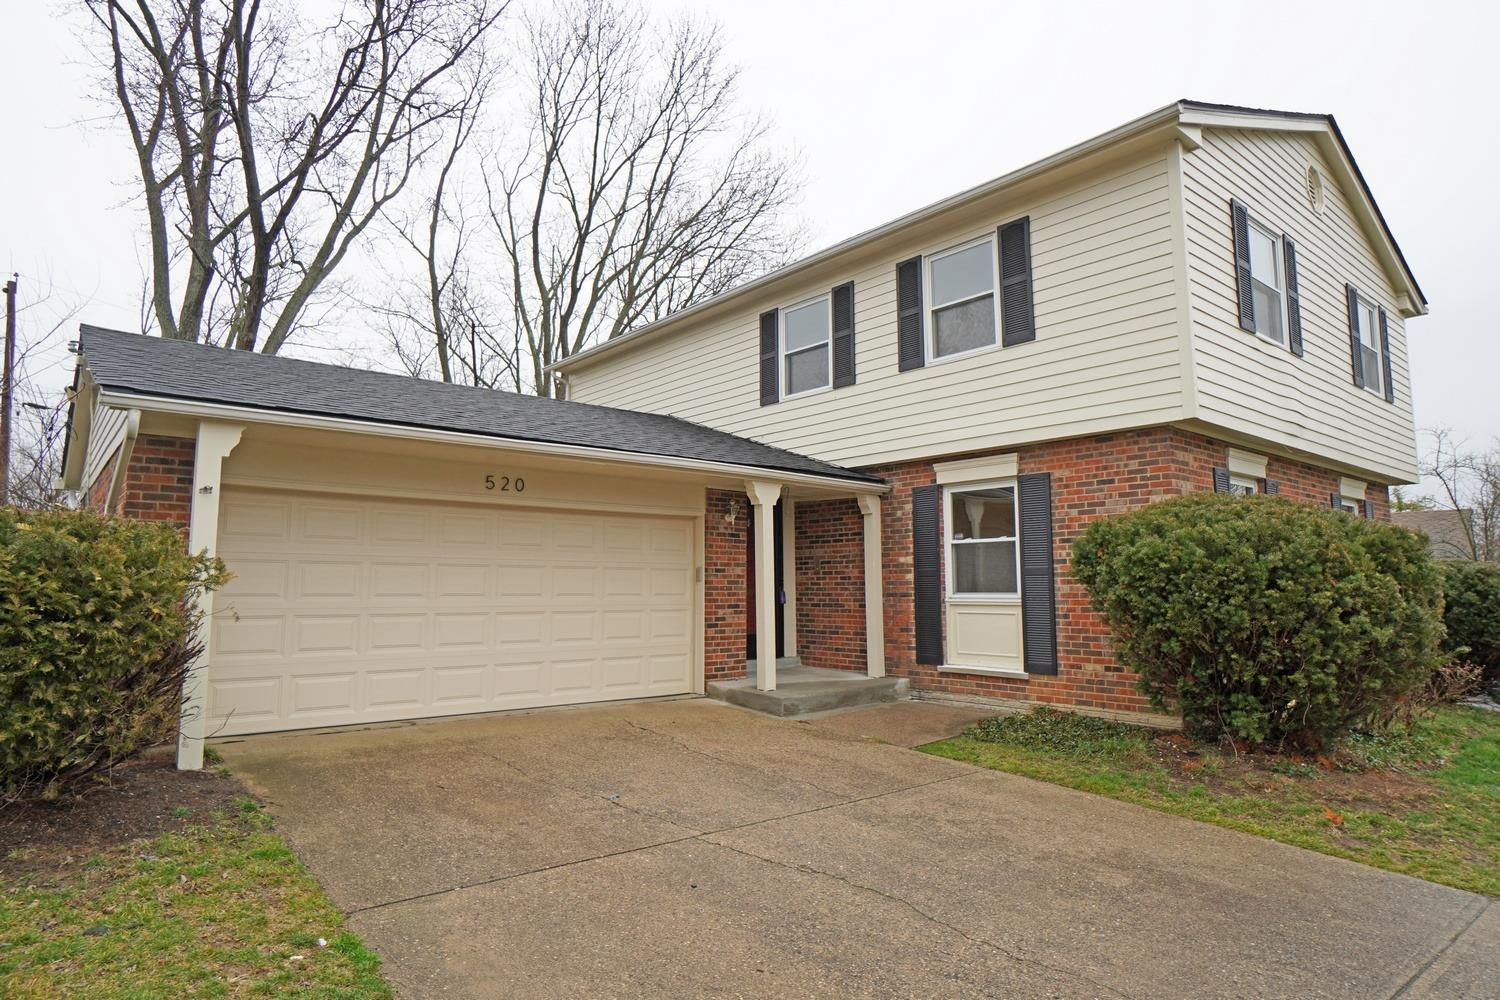 Photo 1 for 520 Waycross Rd Forest Park, OH 45240